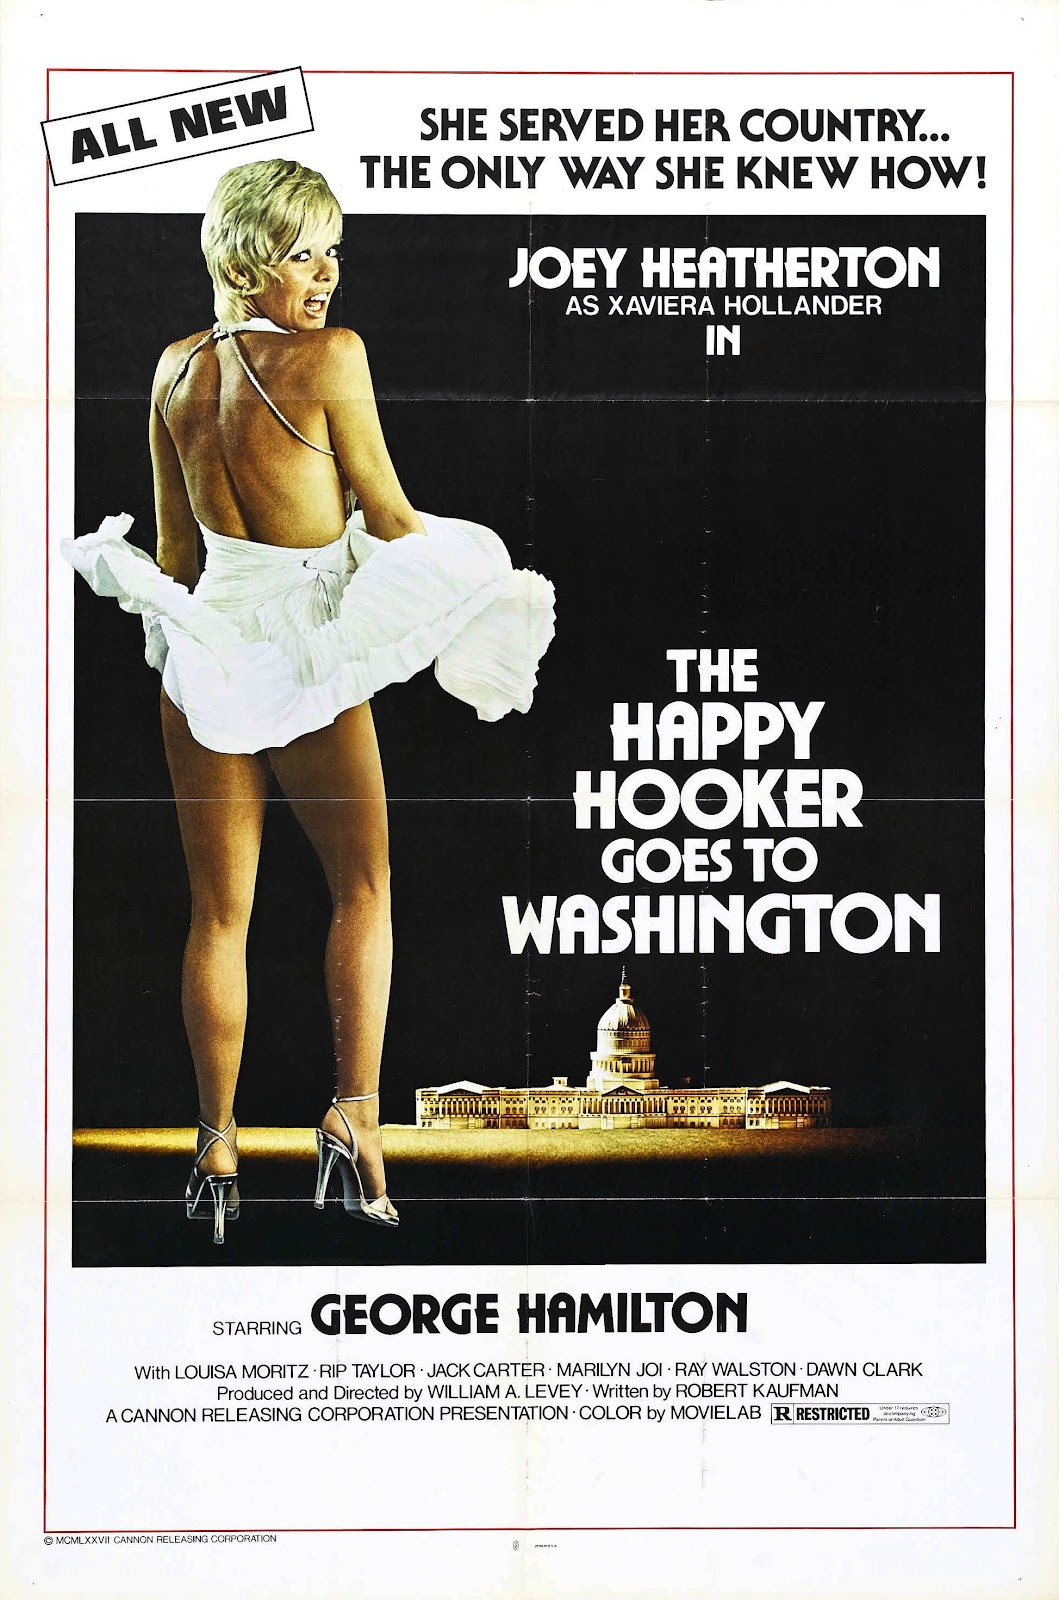 http://3.bp.blogspot.com/-8NKwPITB7eo/T4uK3-CB6NI/AAAAAAAAEWM/o6BCYQqq7T8/s1600/happy_hooker_goes_to_washington_poster_01.jpg